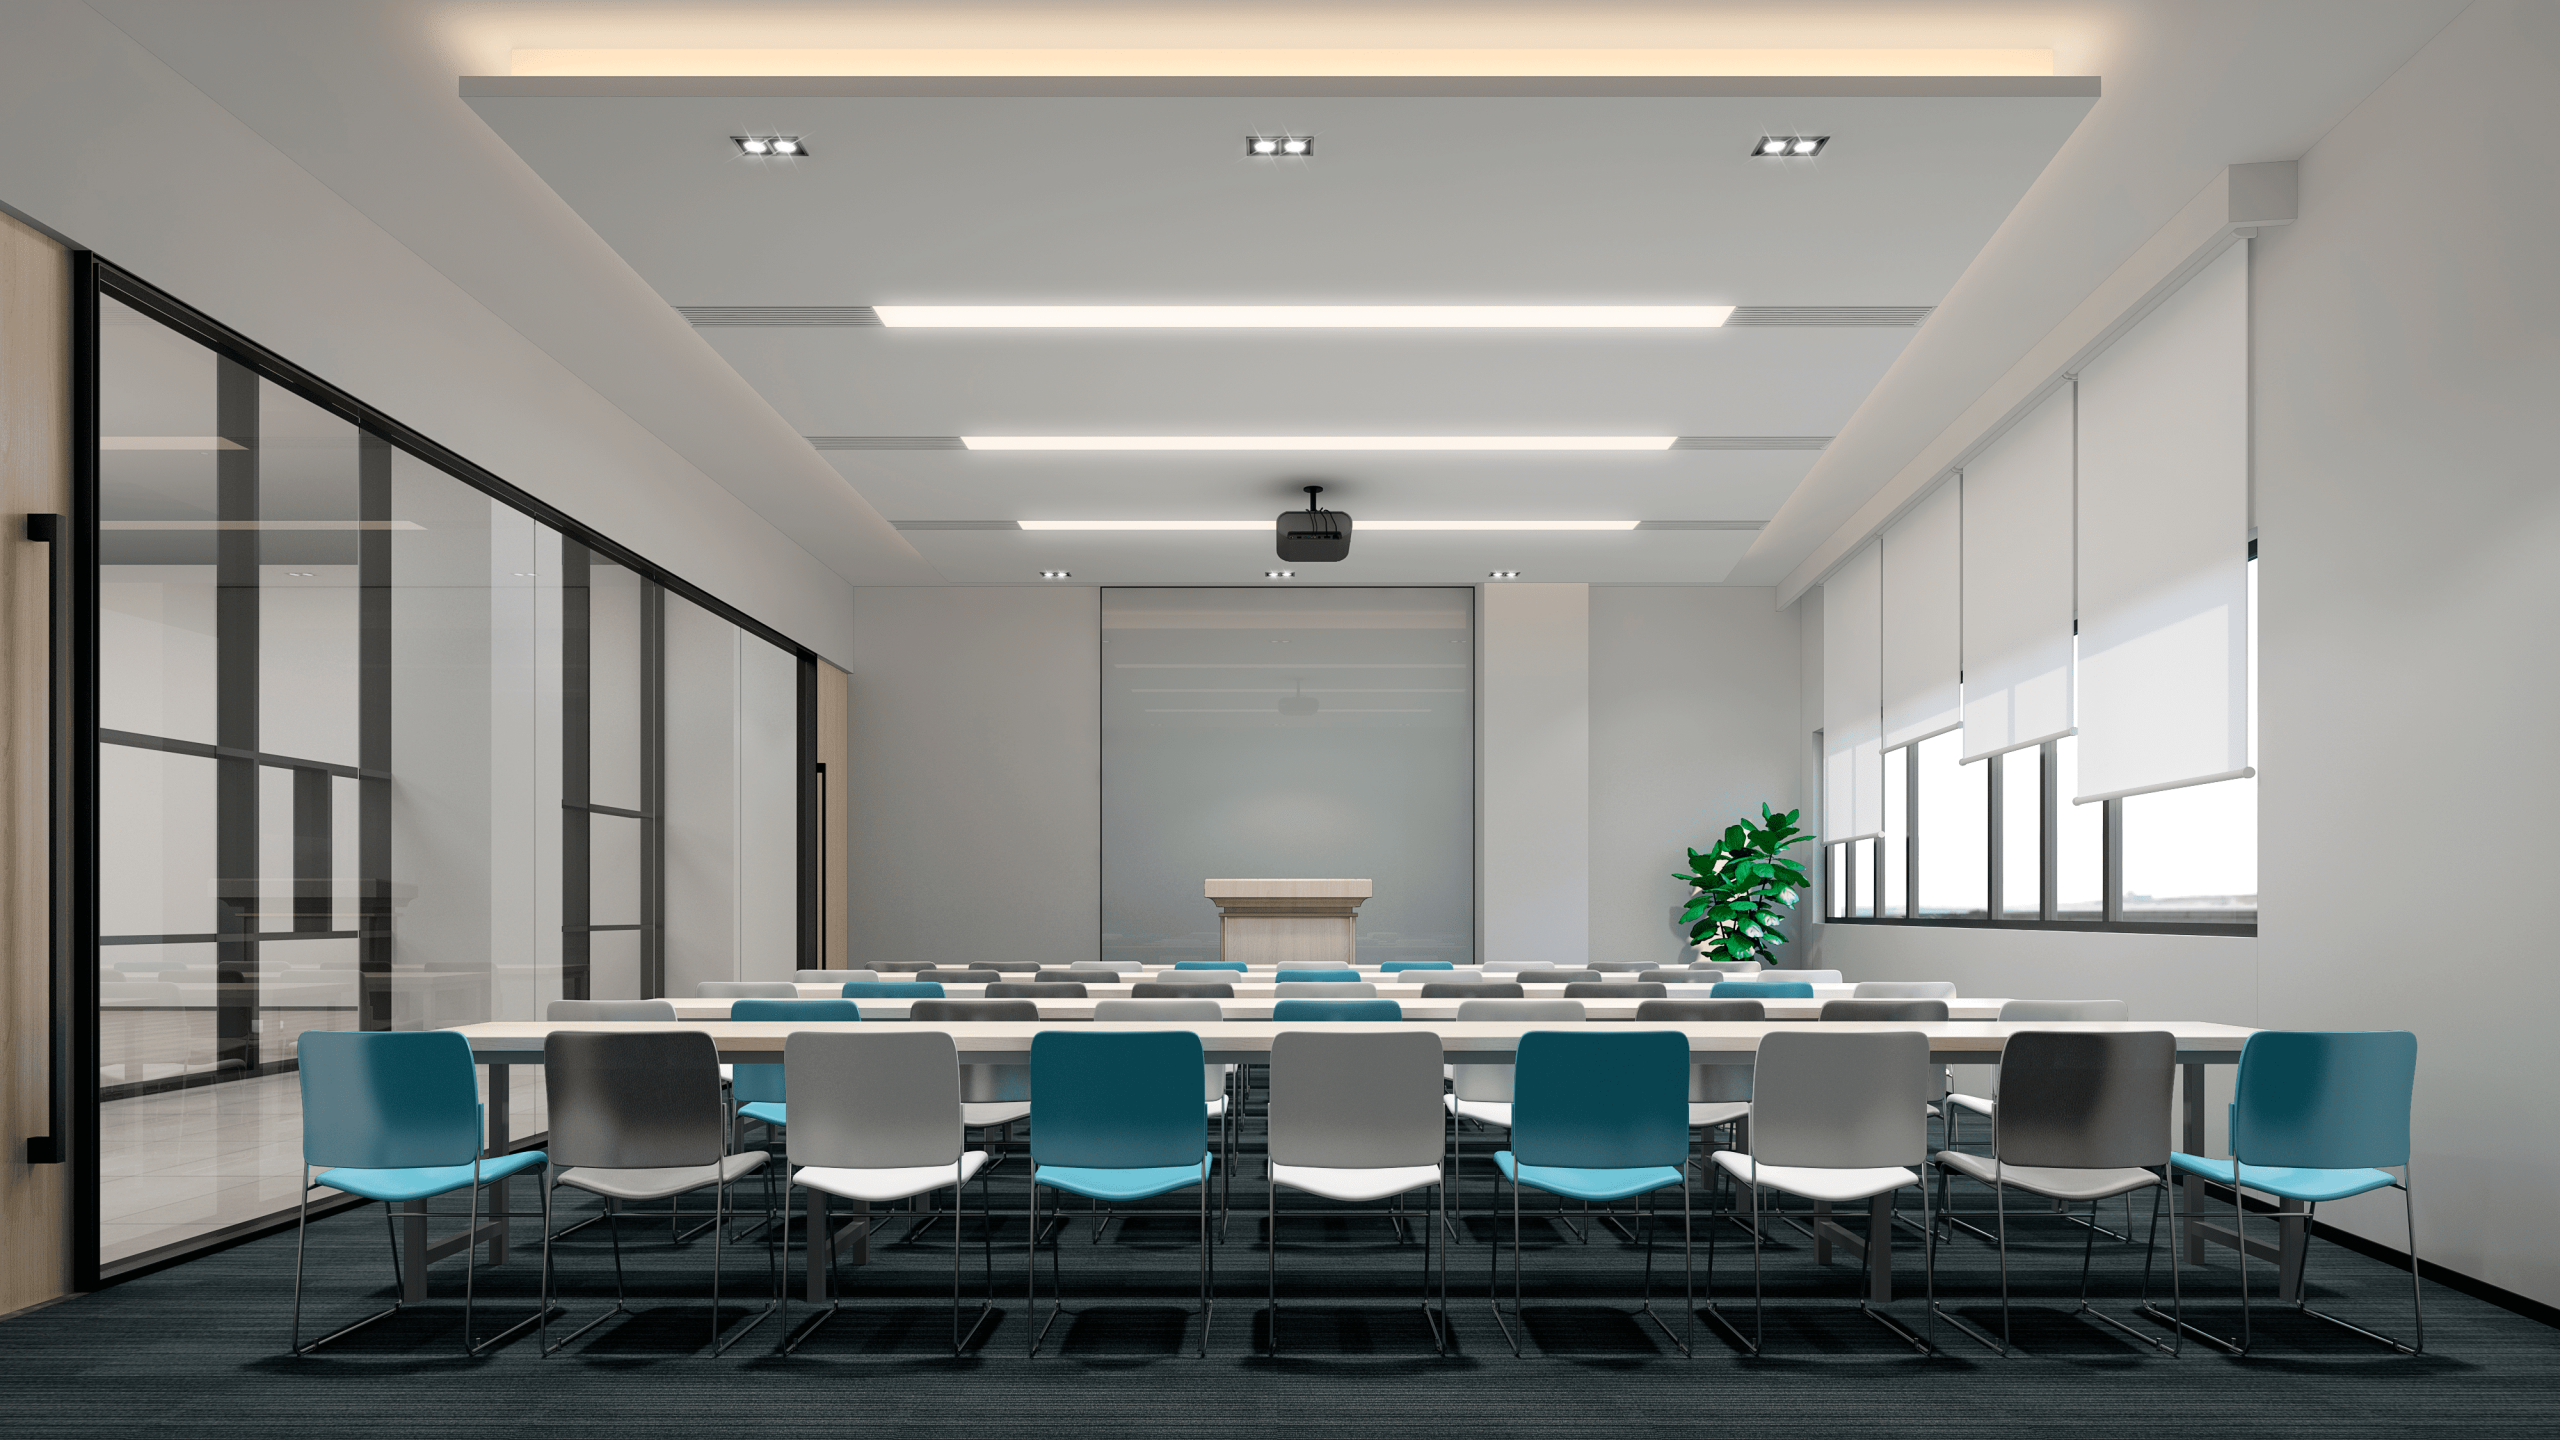 I want to say: The training room renderings you need are like this!